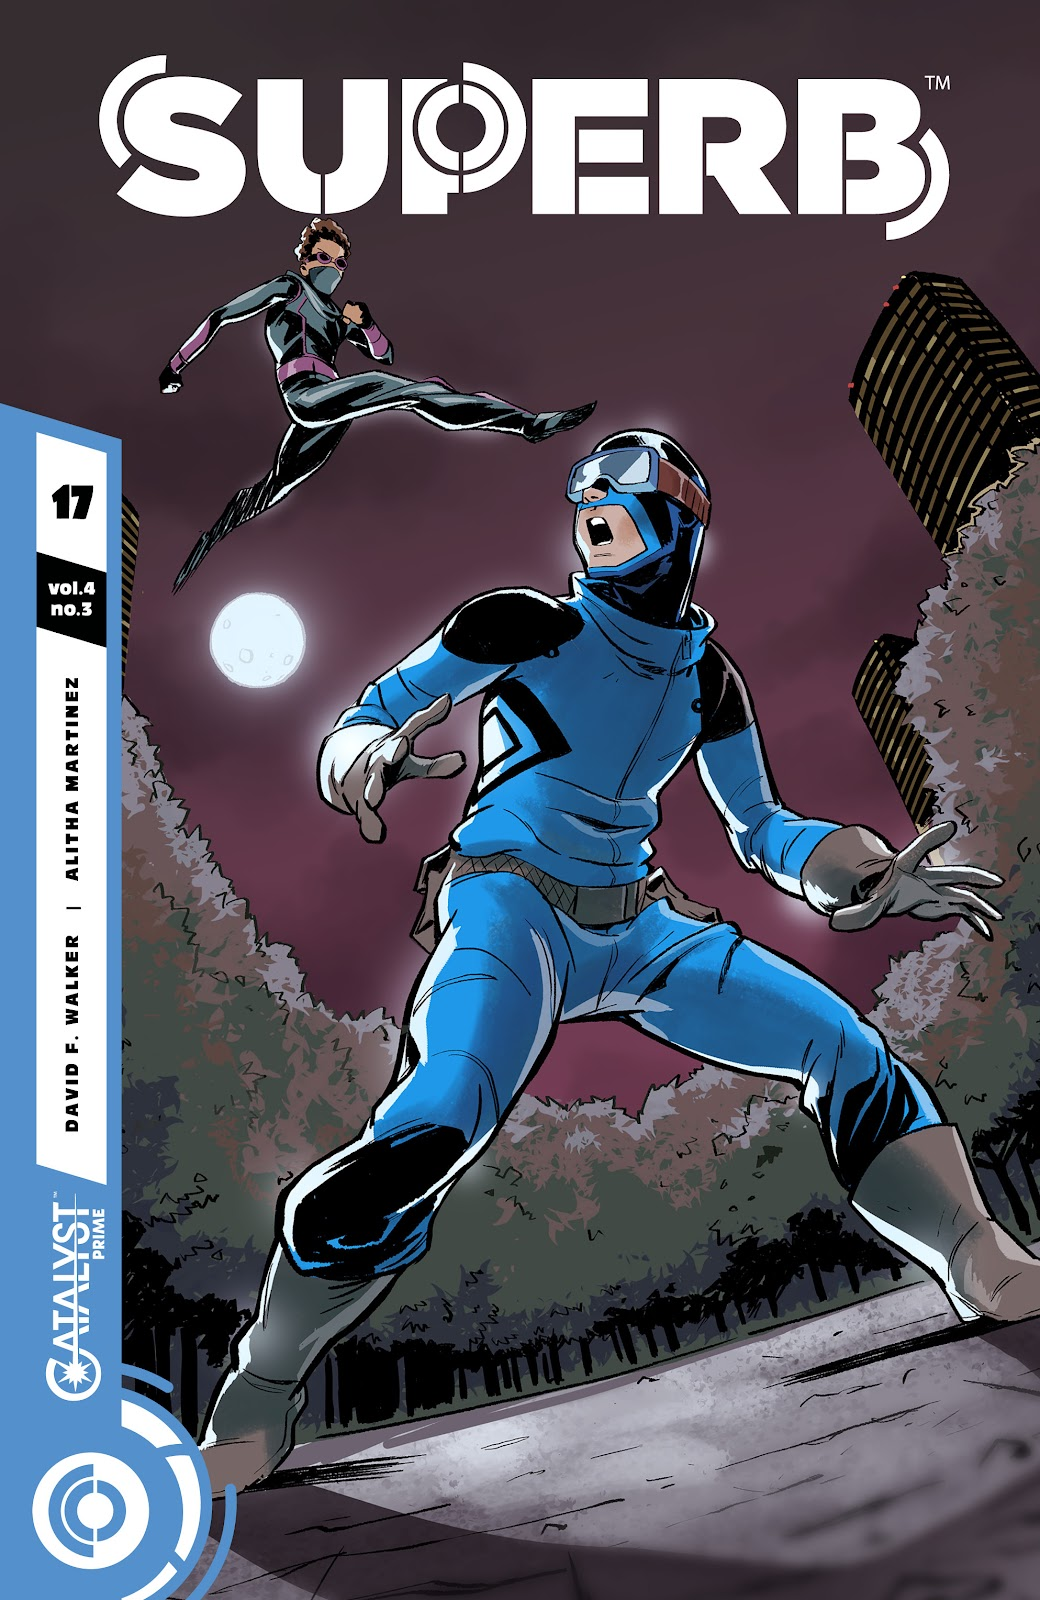 Read online Superb comic -  Issue #17 - 1